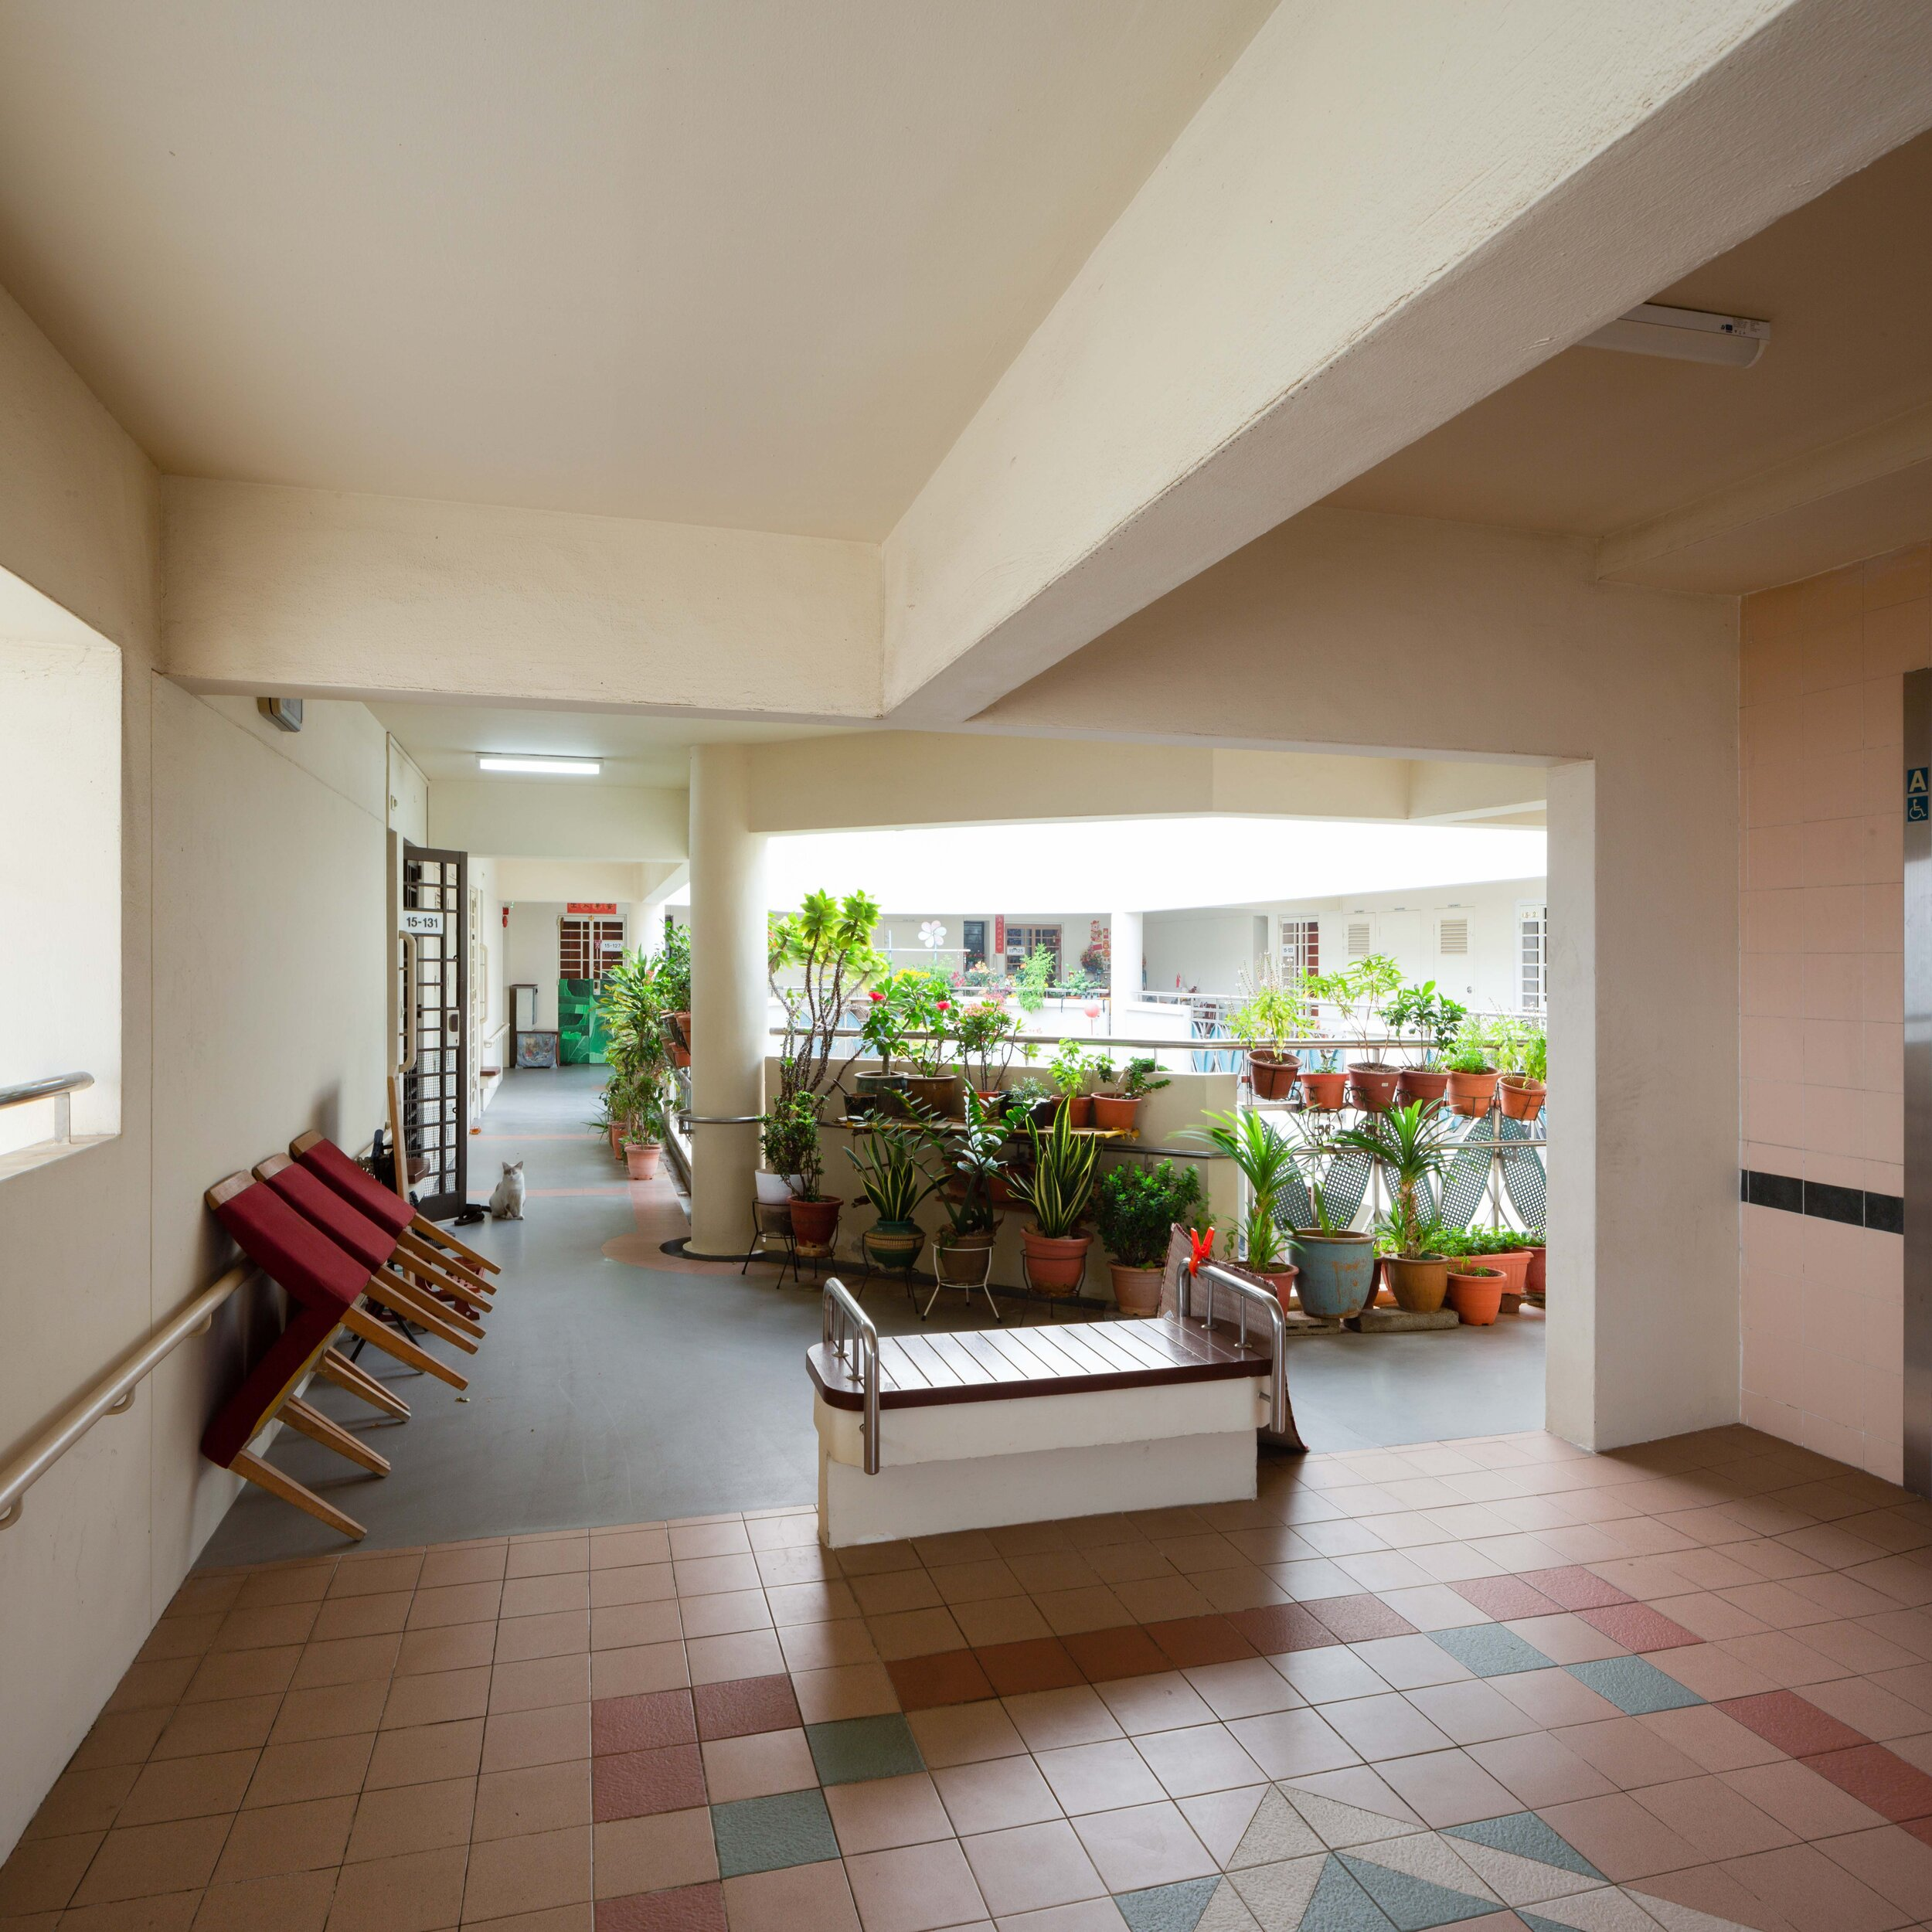 62B Lorong 4 Toa Payoh 190918 081, image by Andrew Campbell Nelson.jpg